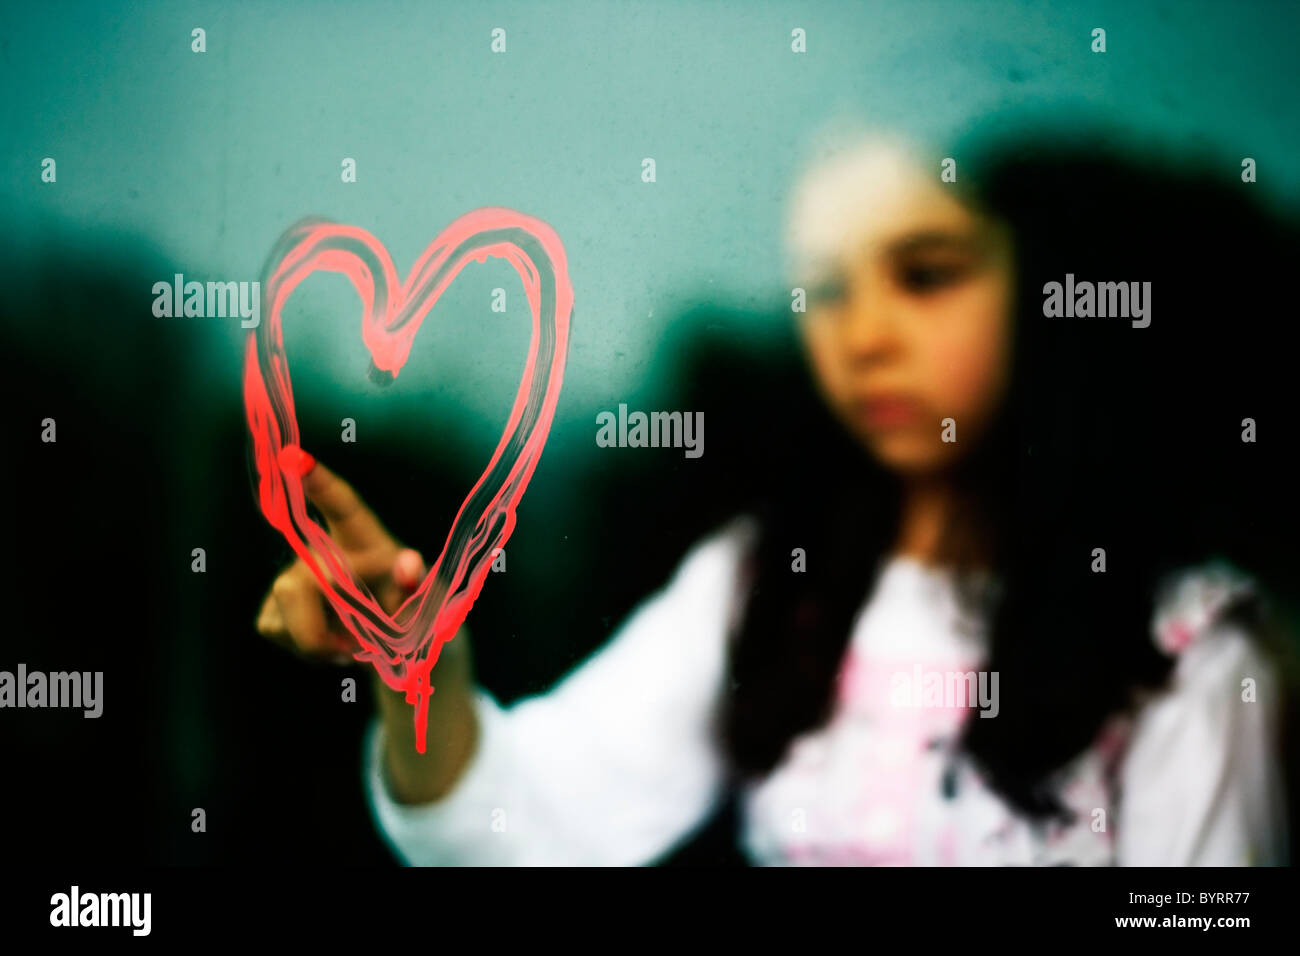 Girl draws heart shape on dirty window with her finger in red paint - Stock Image